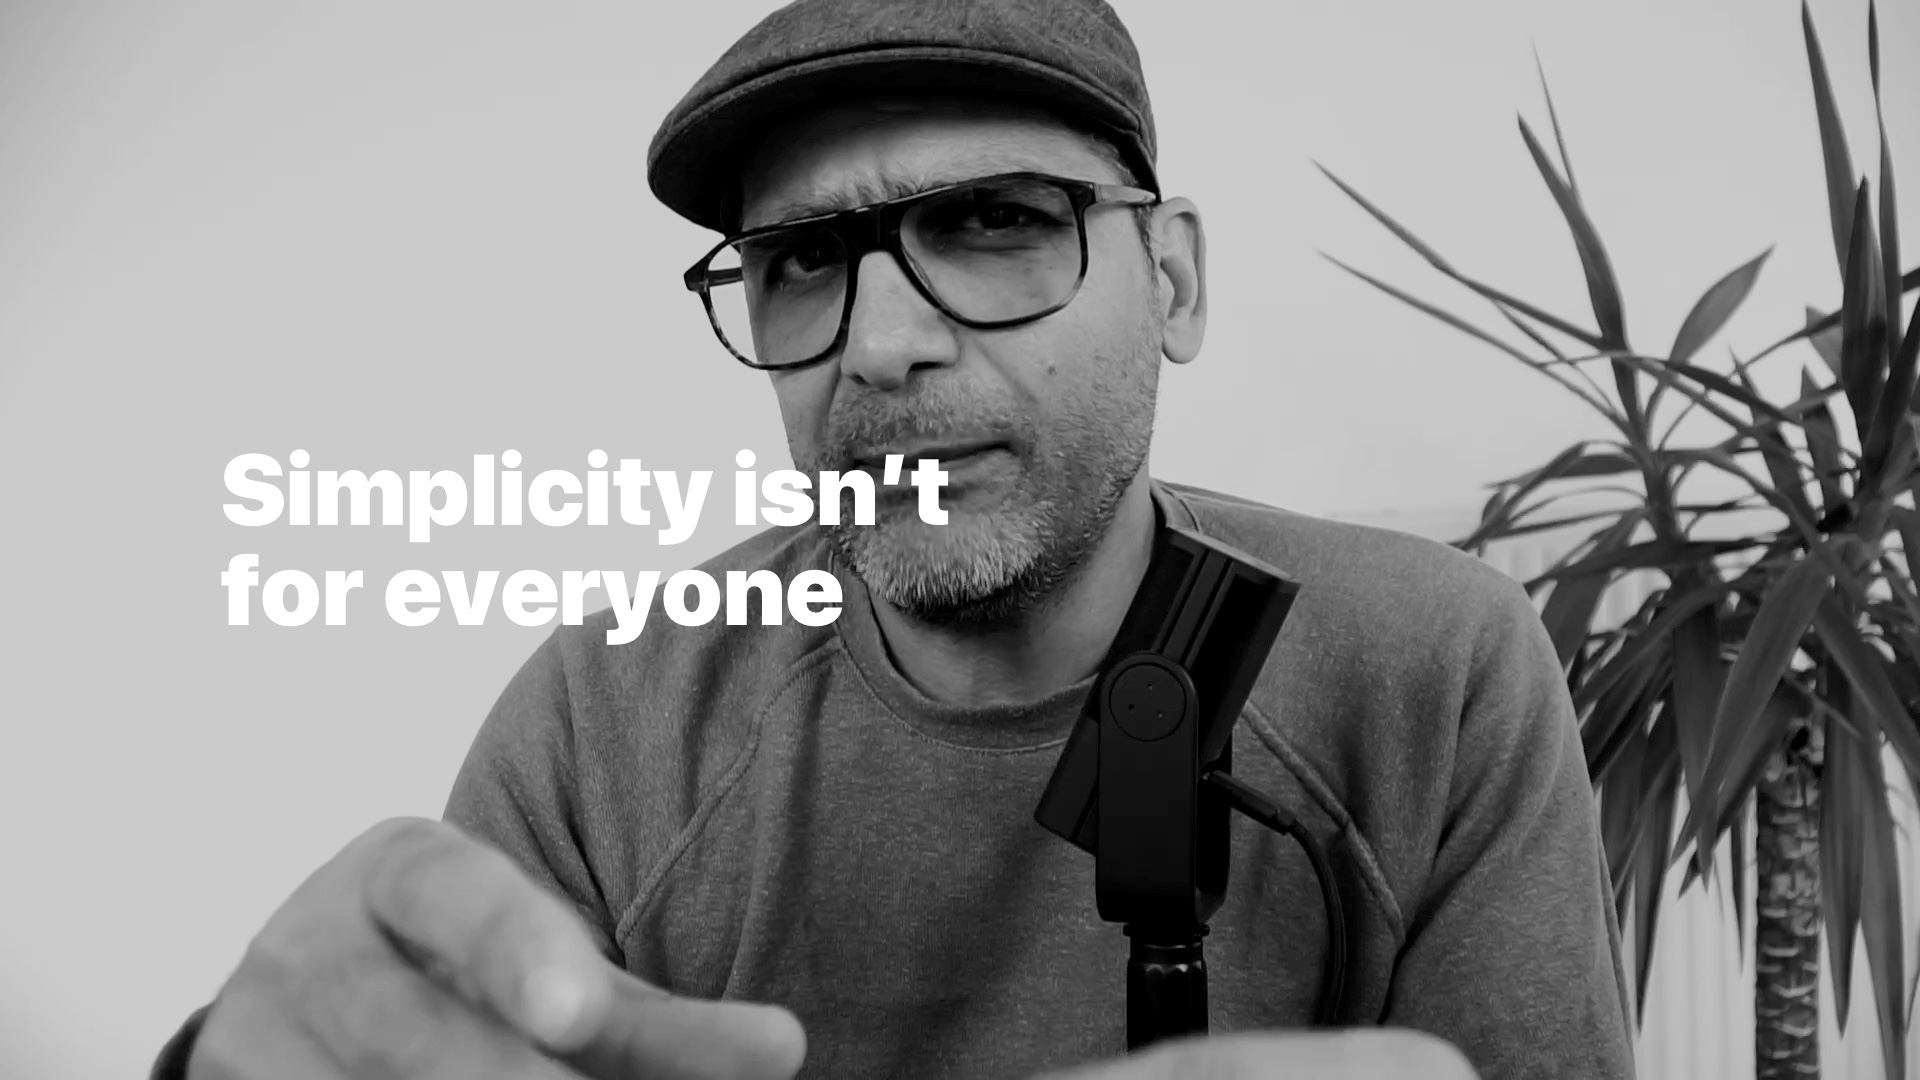 Simplicity isn't for everyone